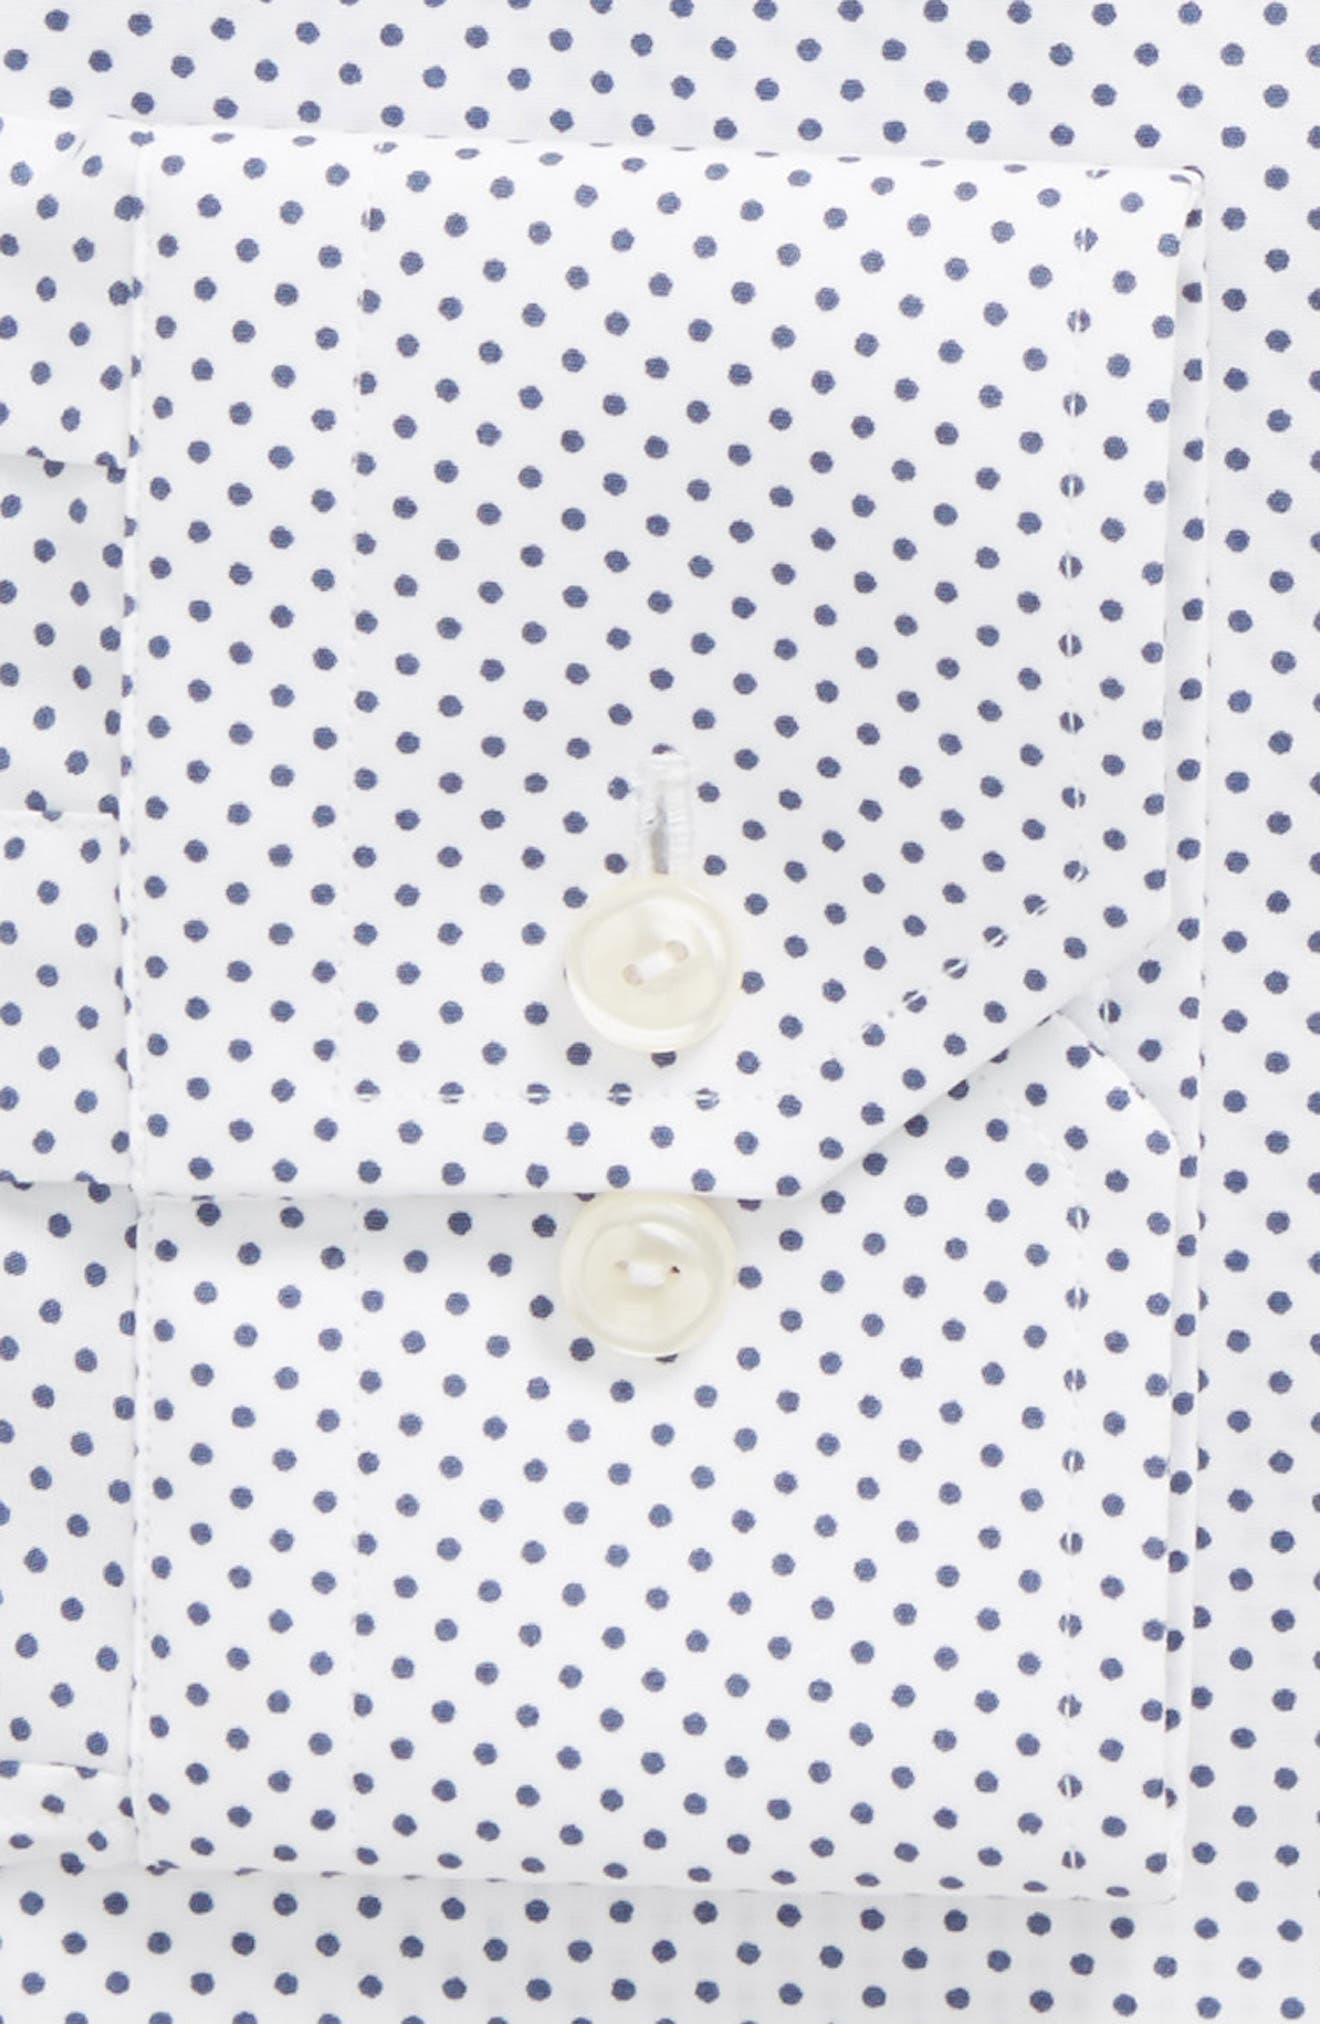 Slim Fit Dot Dress Shirt,                             Alternate thumbnail 5, color,                             White/ Navy